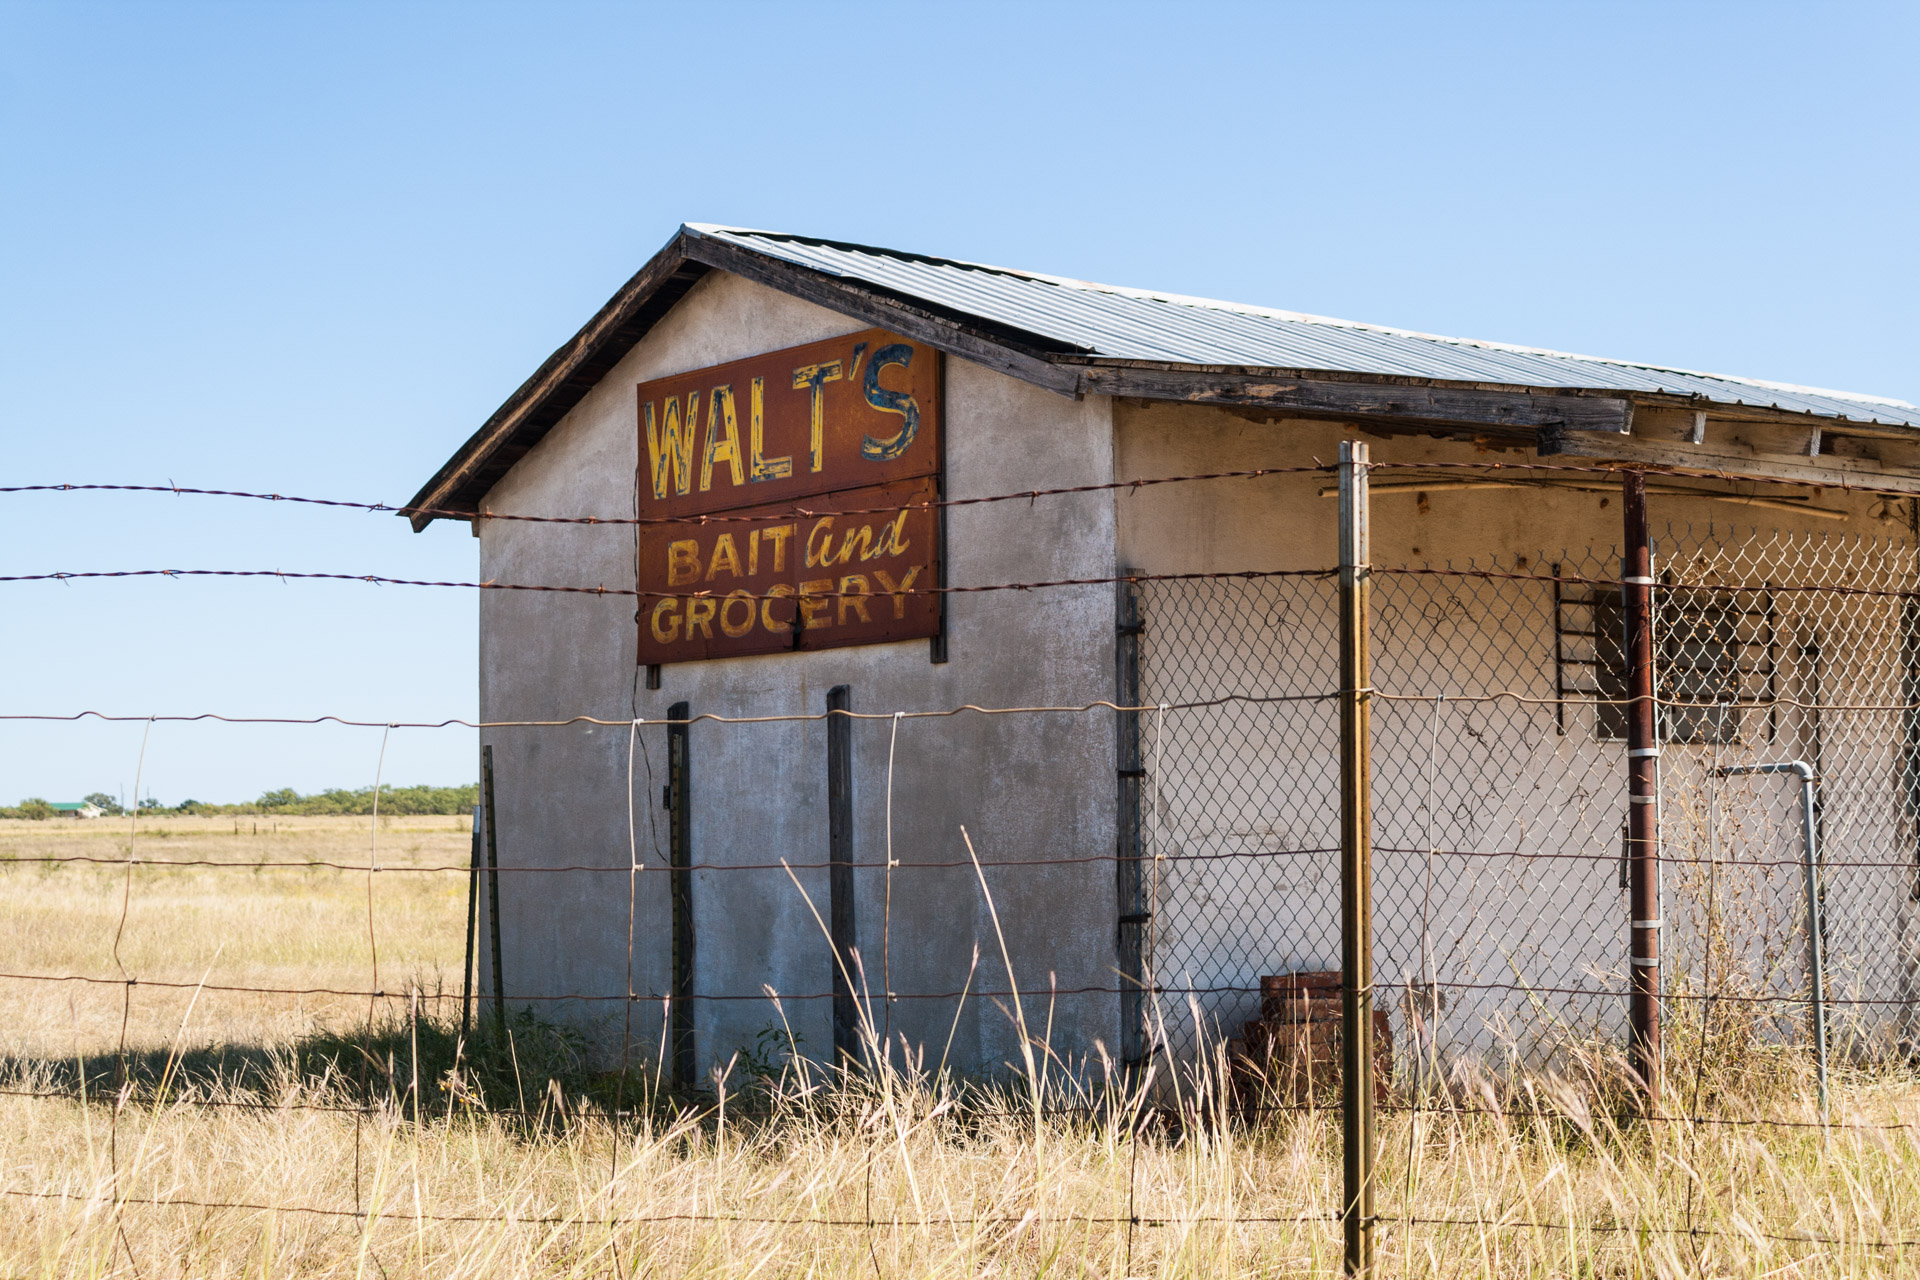 Coleman, Texas - Walt's Bait and Grocery (angle close)